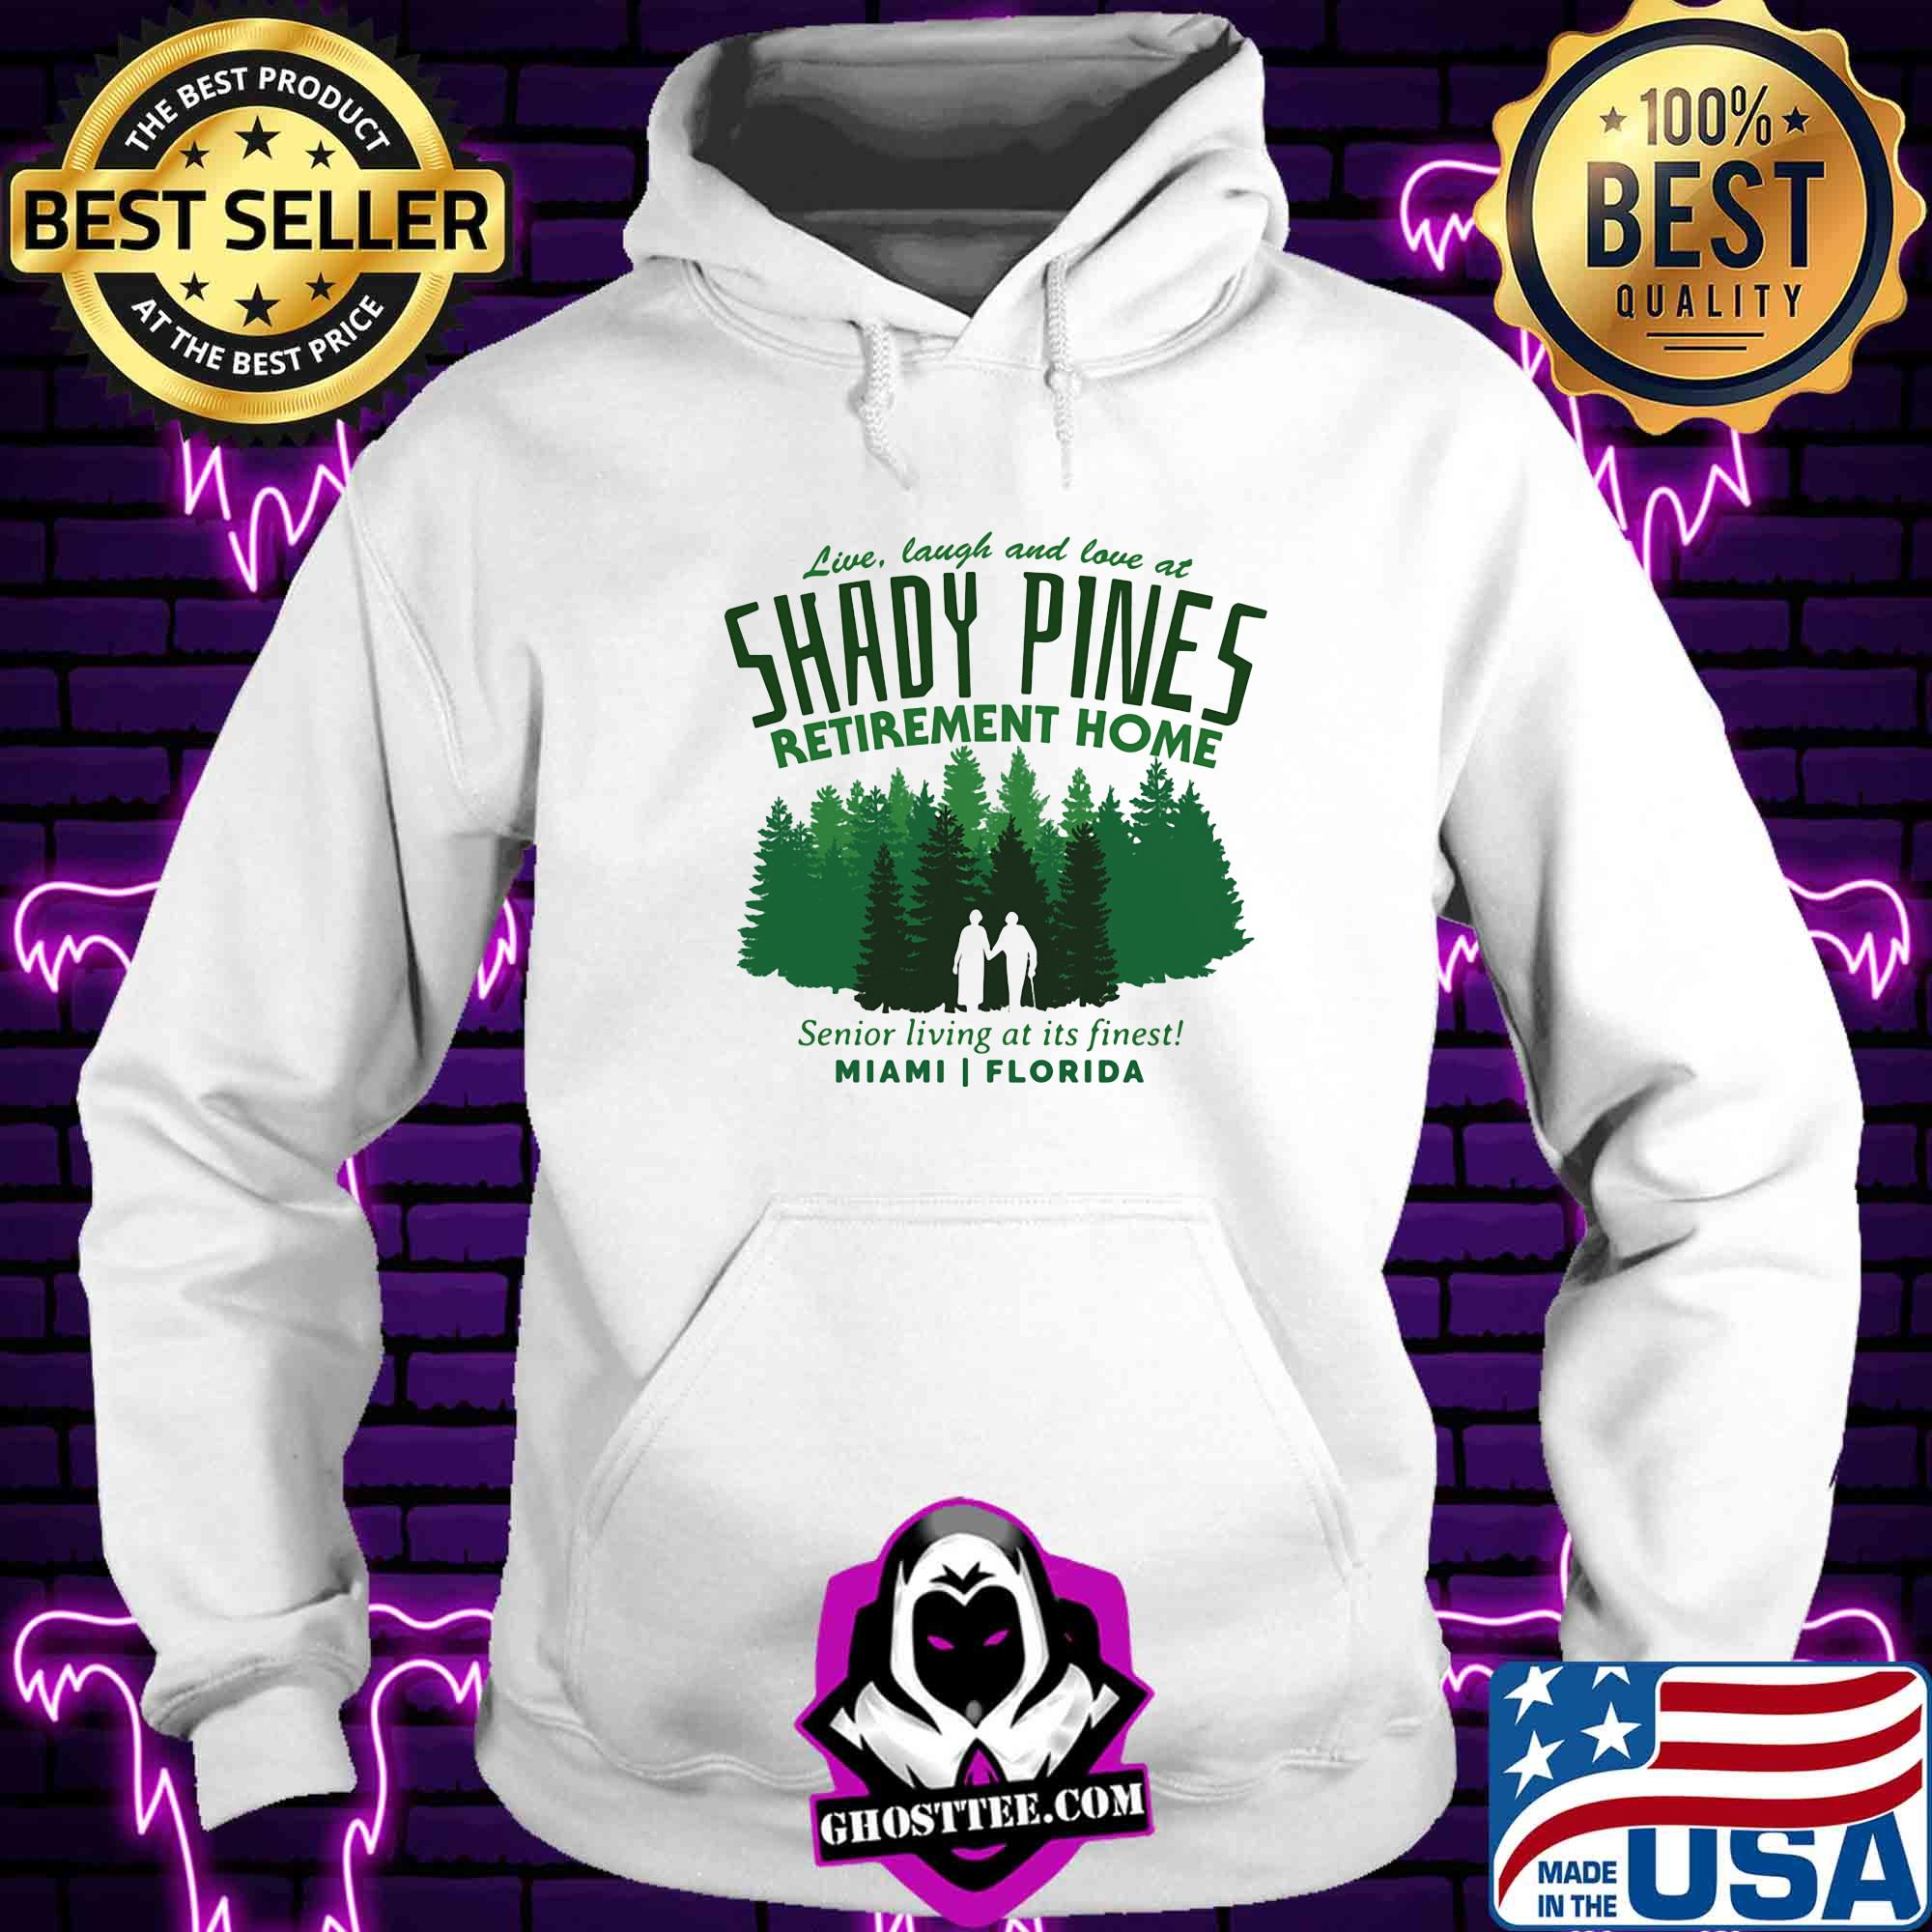 3fcd853e live laugh and love at shady pines retirement home senior living at its finest miami florida shirt hoodie - Home